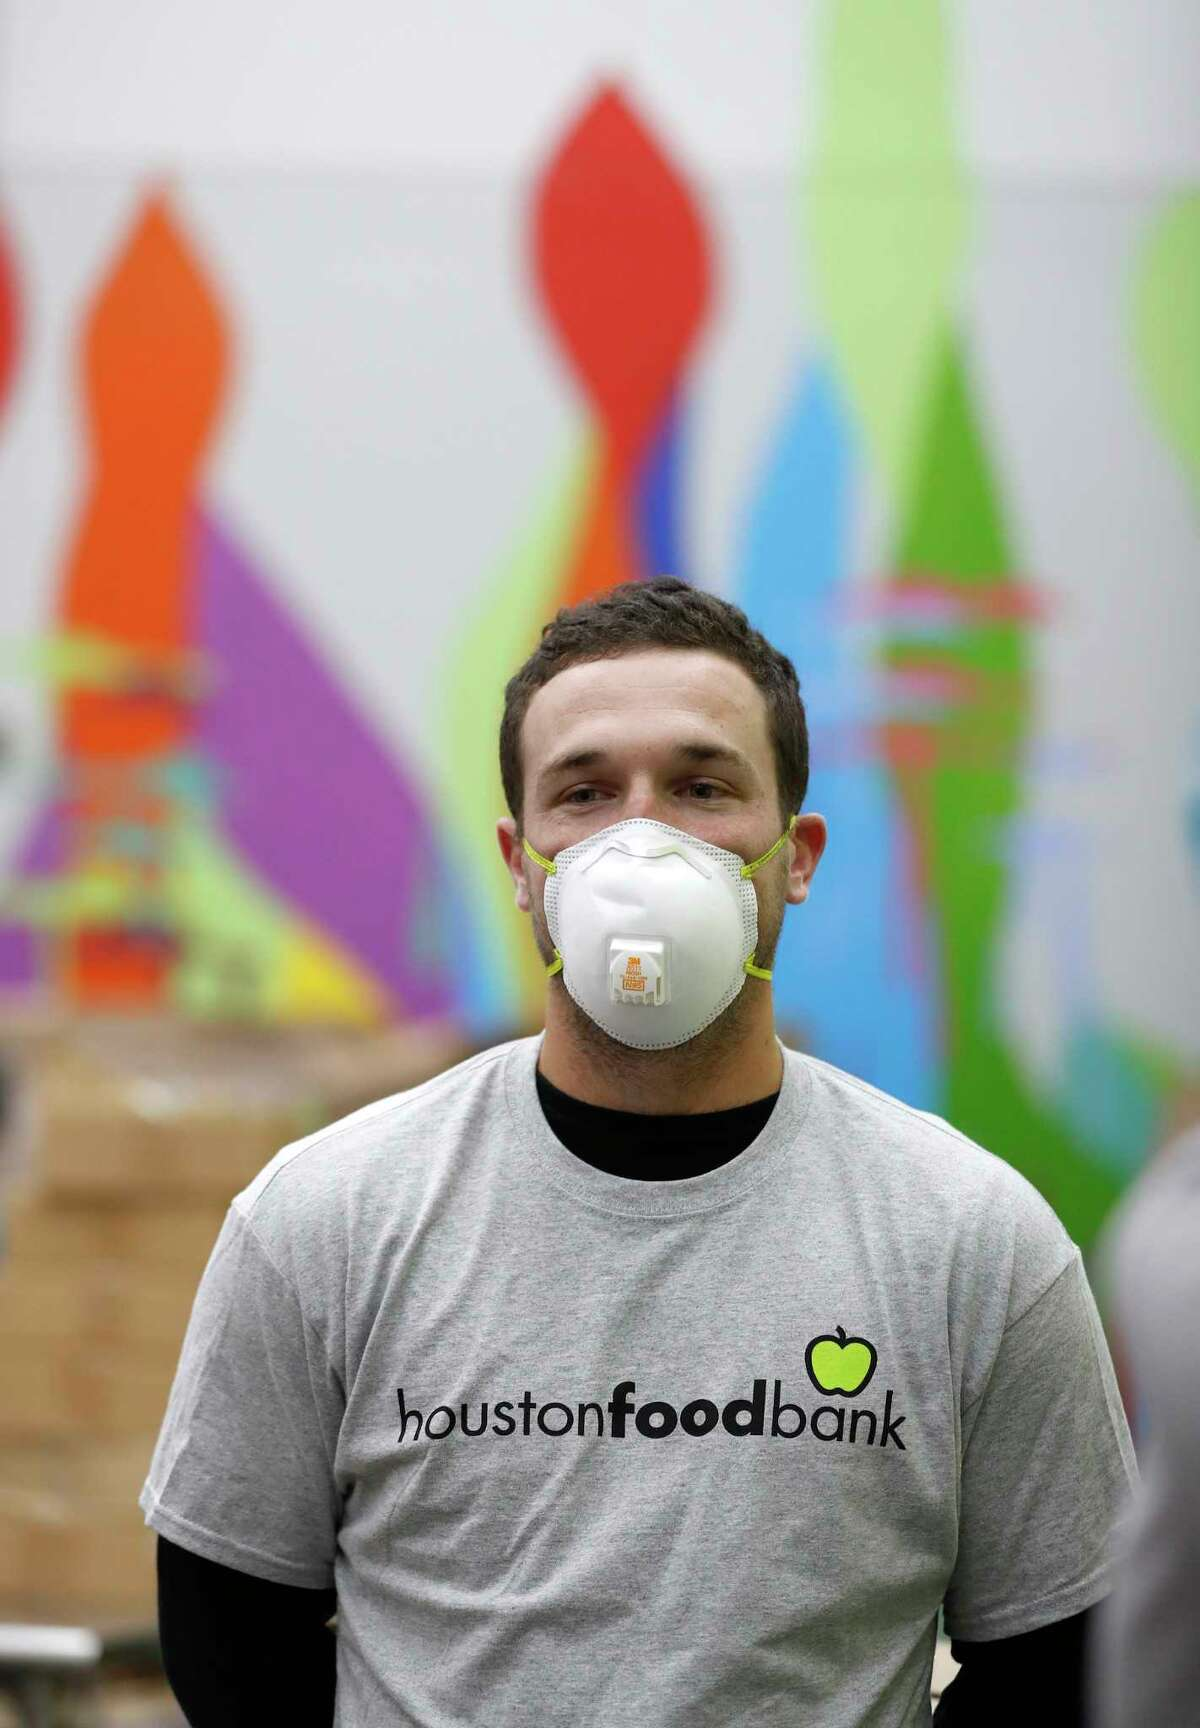 Houston Astros Alex Bregman conducts an interview before volunteering with his fiancee, Reagan Howard, at the Houston Food Bank, in Houston,Friday, April 10, 2020. Bregman launched his FEEDHOU, a $1 million fundraising campaign to help feed Houston-area residents during the coronavirus pandemic.